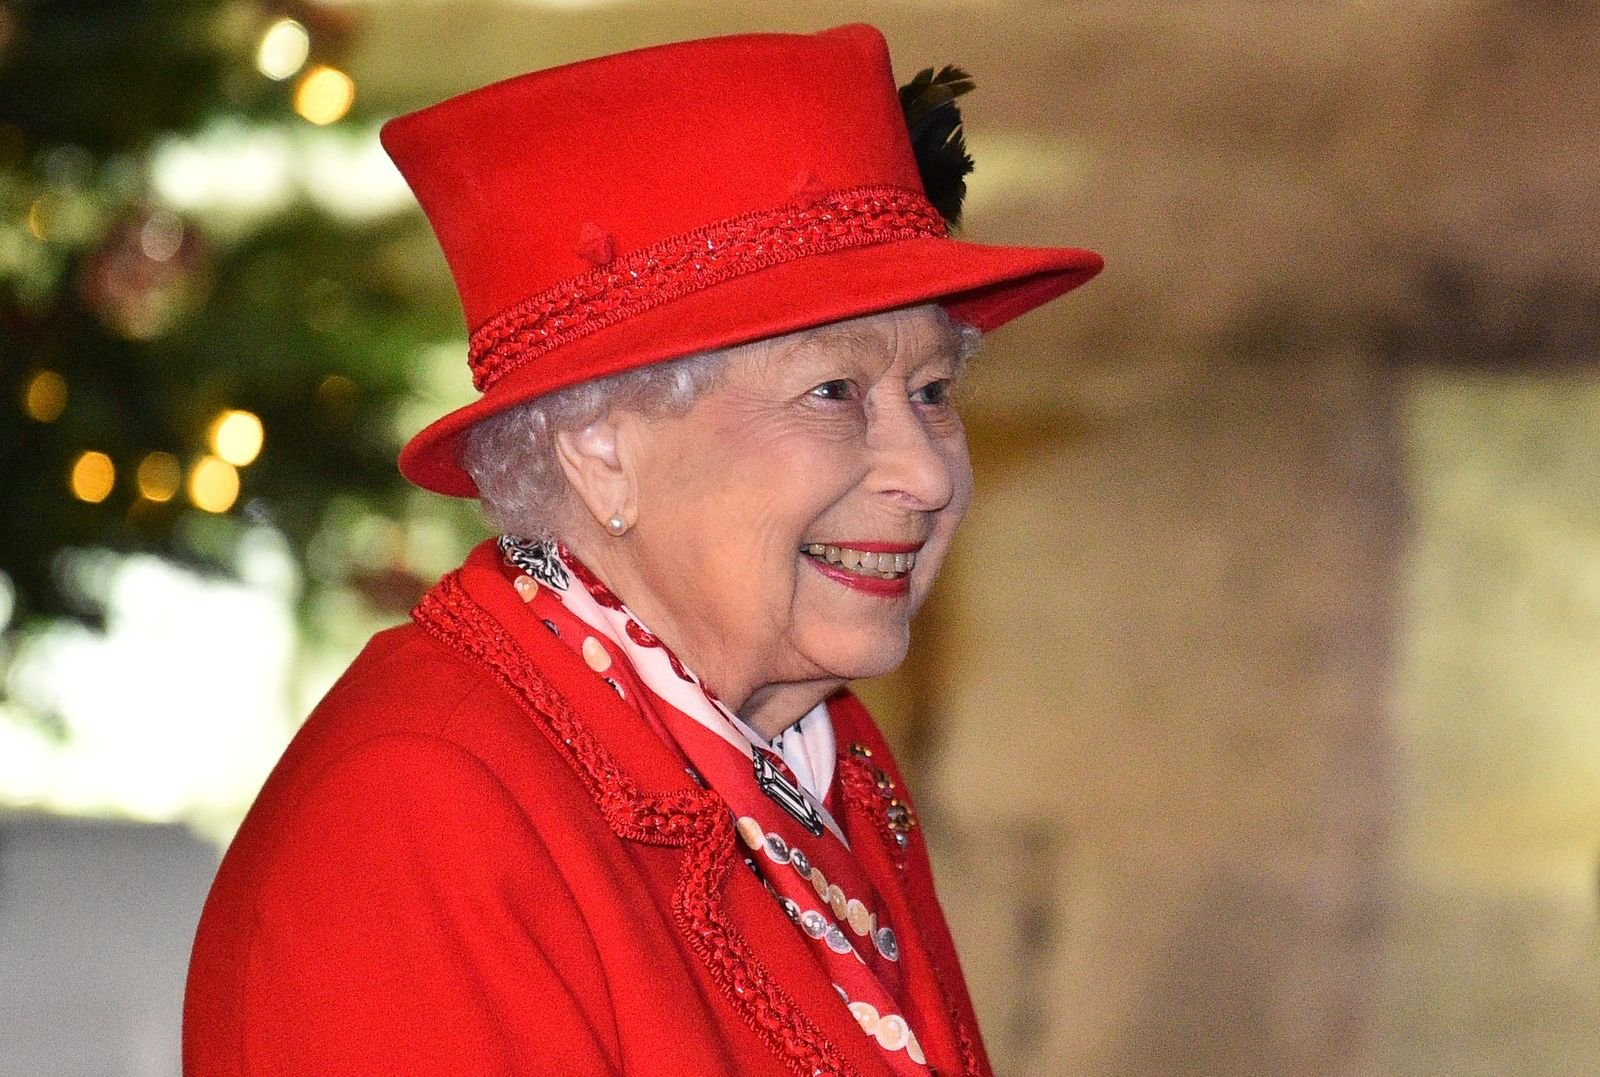 Queen Elizabeth II speaking to local volunteers and key workers about their work during the COVID-19 pandemic and over Christmas in the quadrangle of Windsor Castle on December 8, 2020 | Getty Images